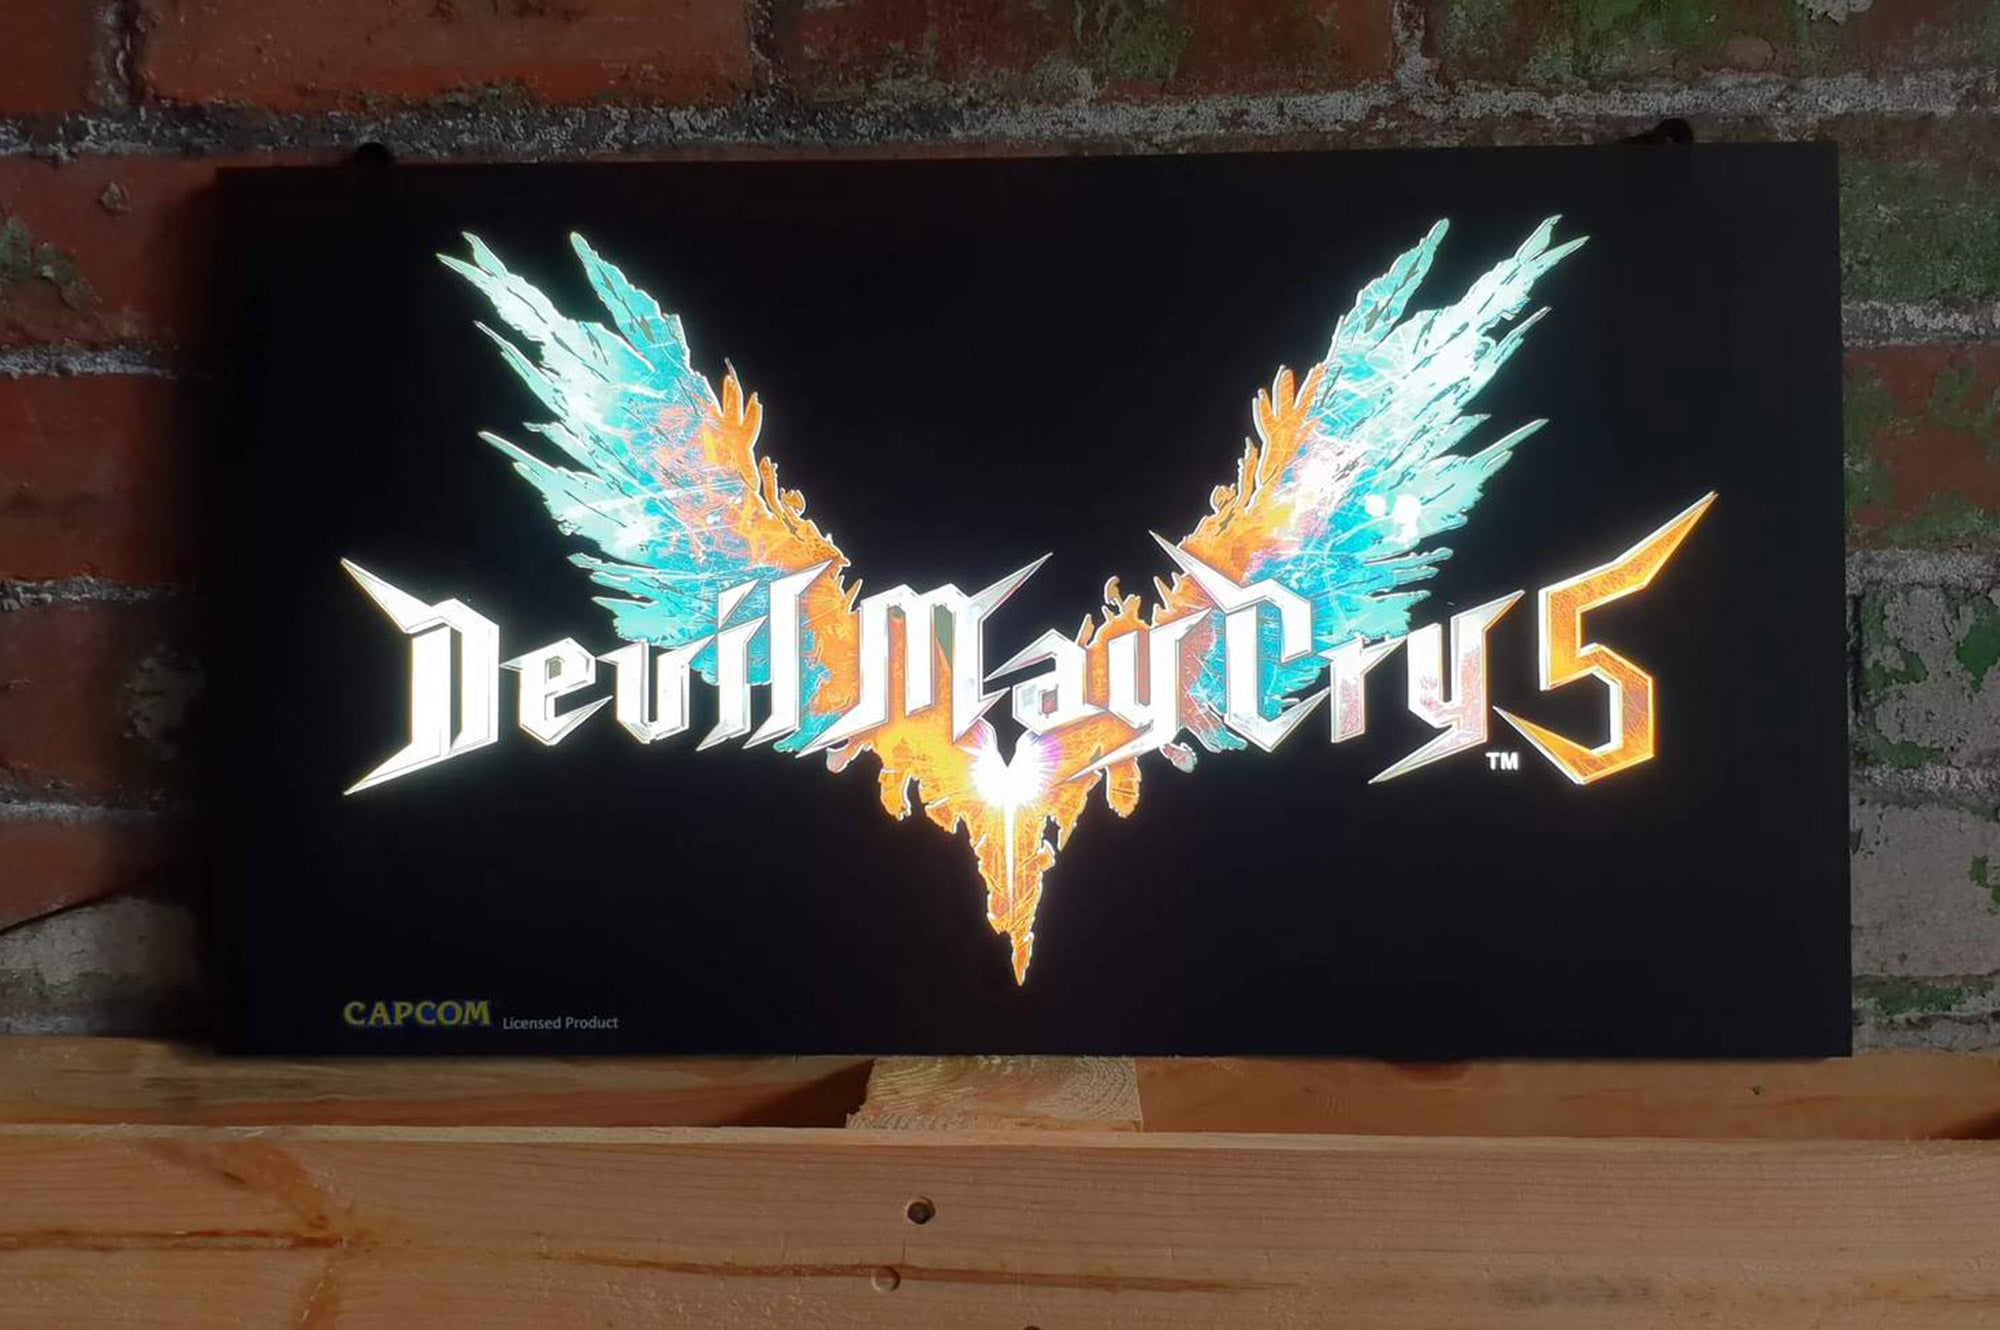 Devil May Cry 5 – Printed LED Light Tile